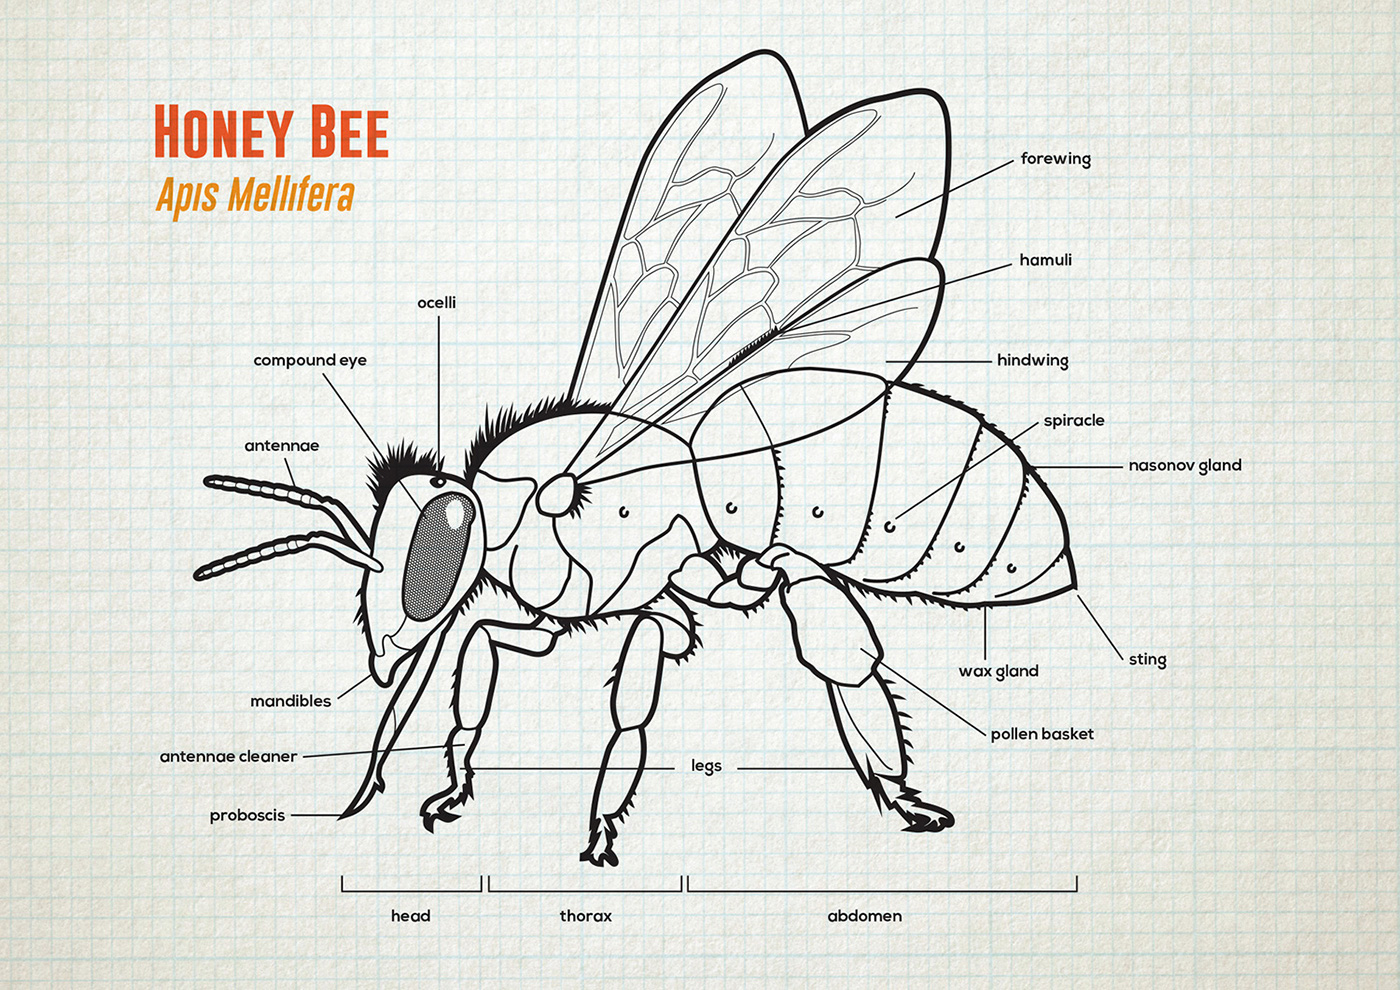 bumble bee diagram fungal cell labeled honey anatomy and lifecycle on behance